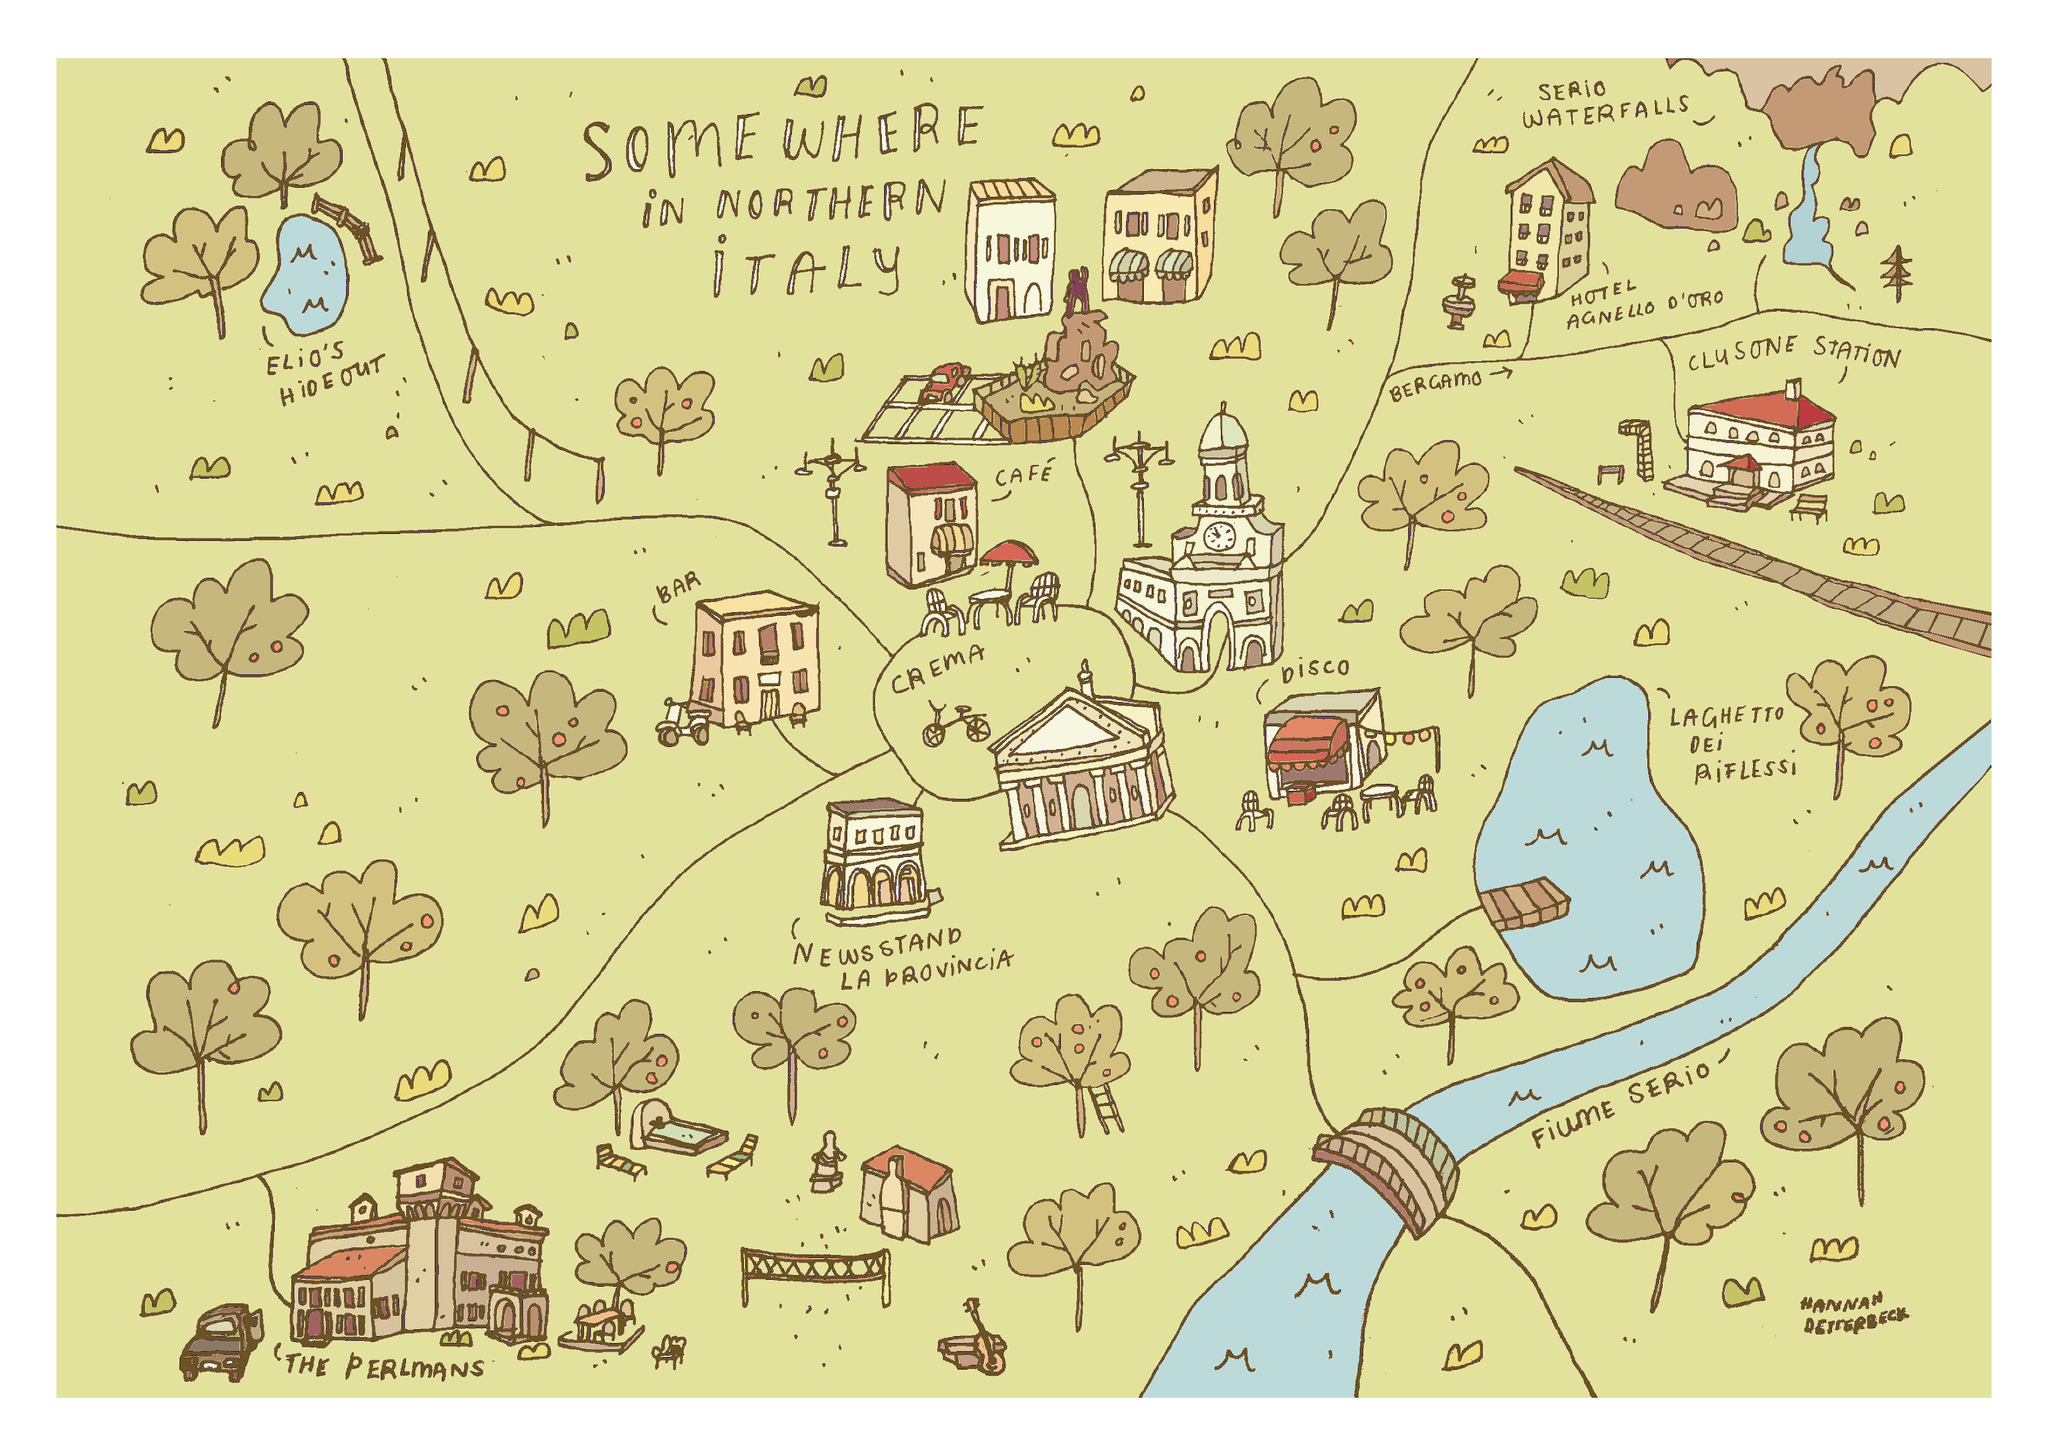 Somewhere in Northern Italy illustrated map - Hannah Detterbeck – Mapsy